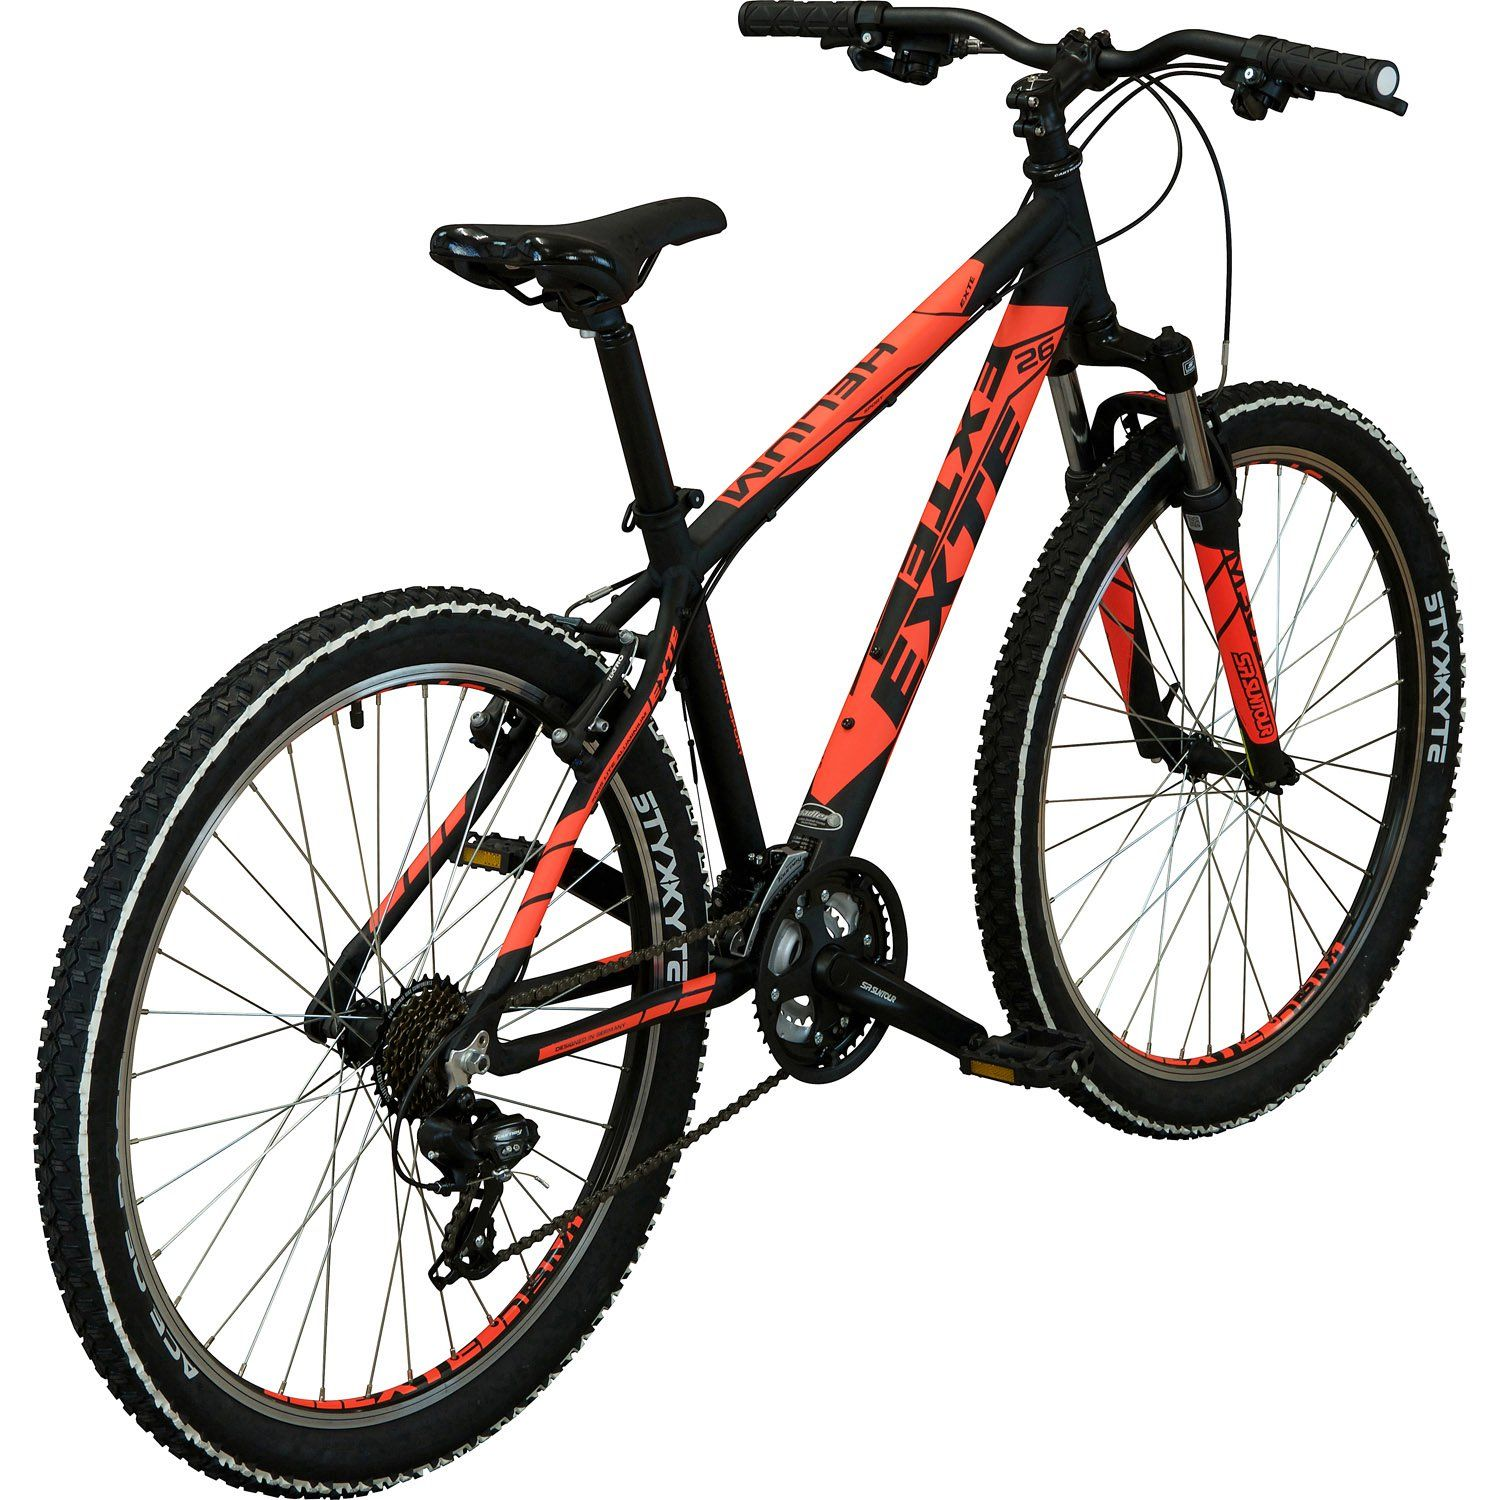 exte helium mountainbike 26 zoll schwarz neonorange 41 cm online shop zweirad stadler. Black Bedroom Furniture Sets. Home Design Ideas